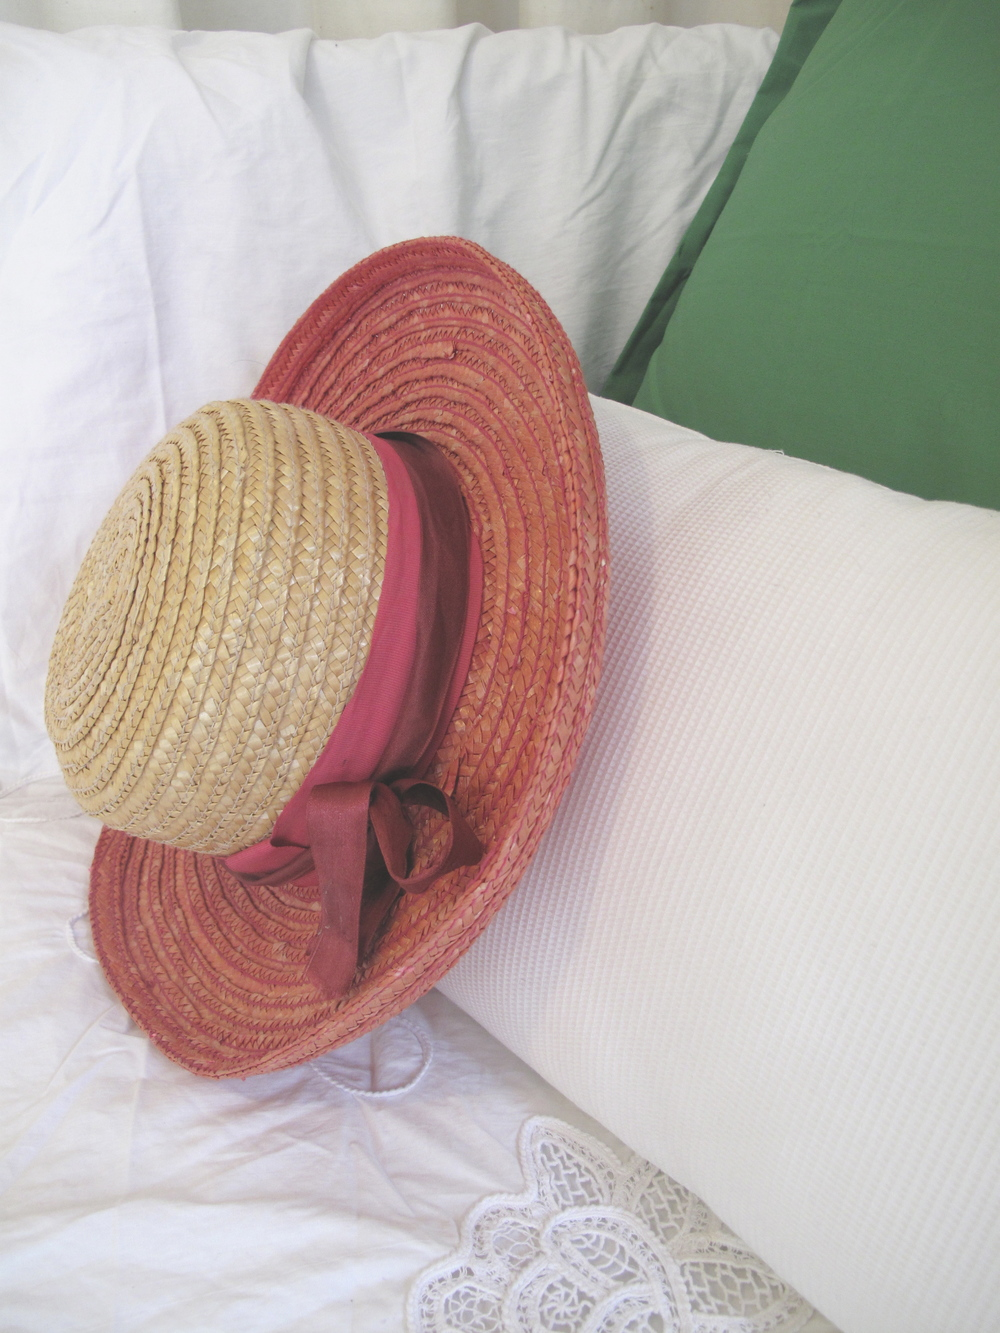 Straw hat in pink